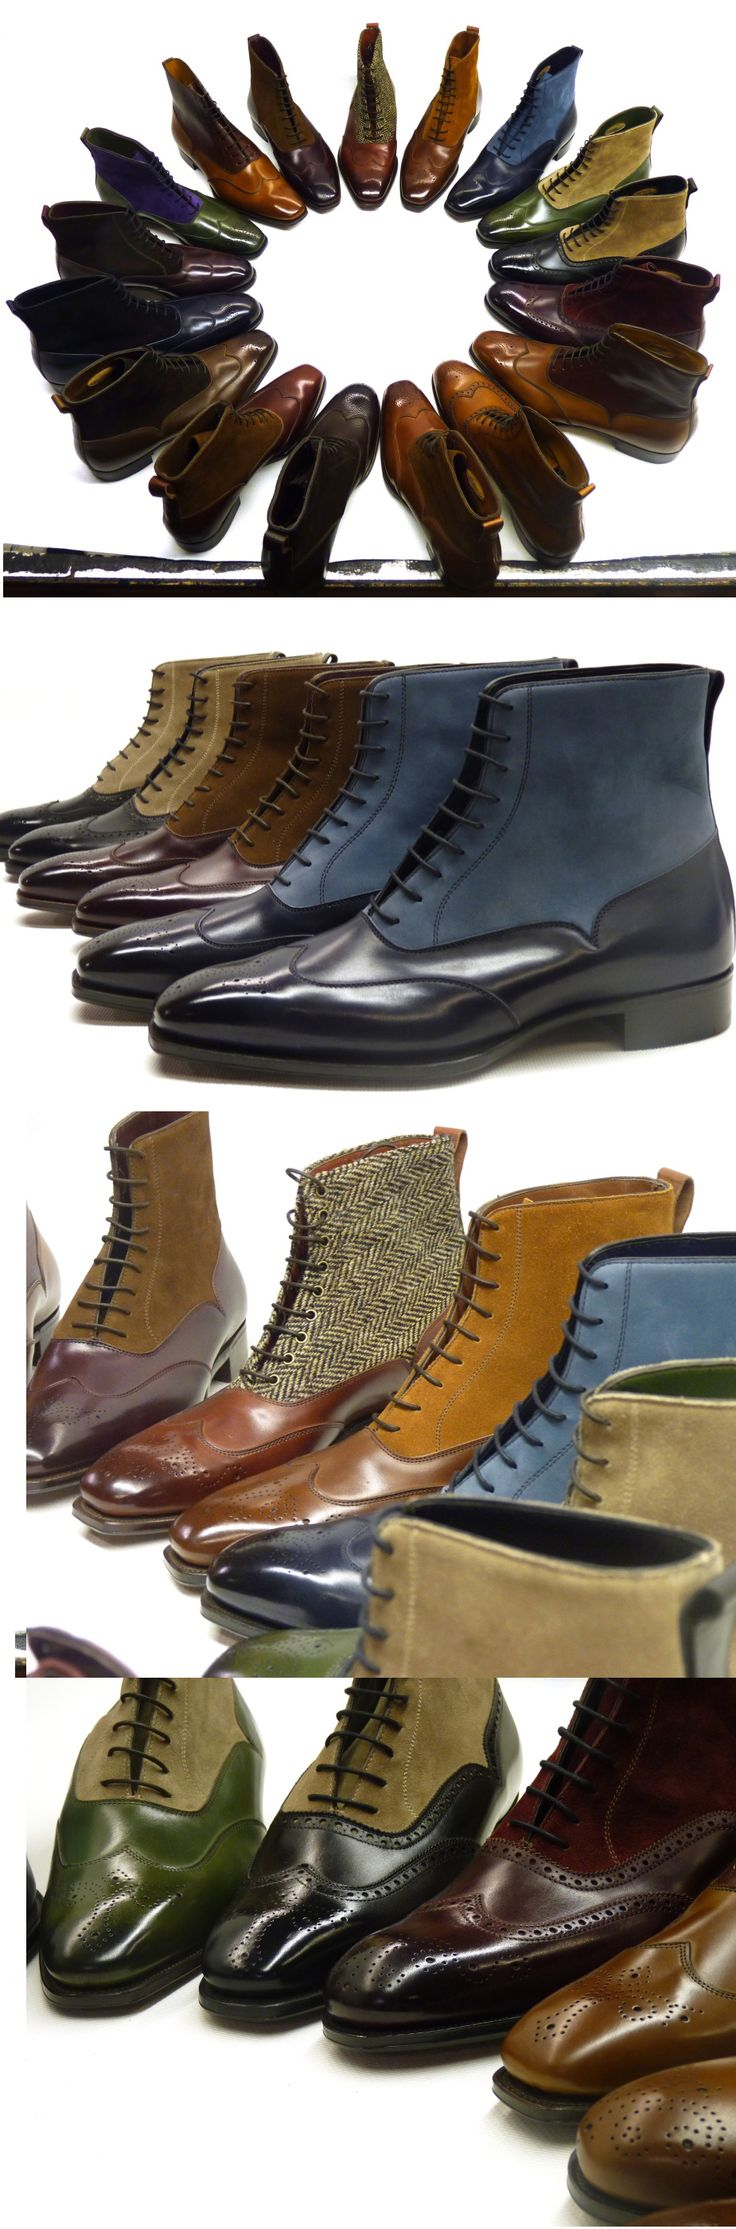 New range of boots from Alfred Sargent. Drool-worthy.